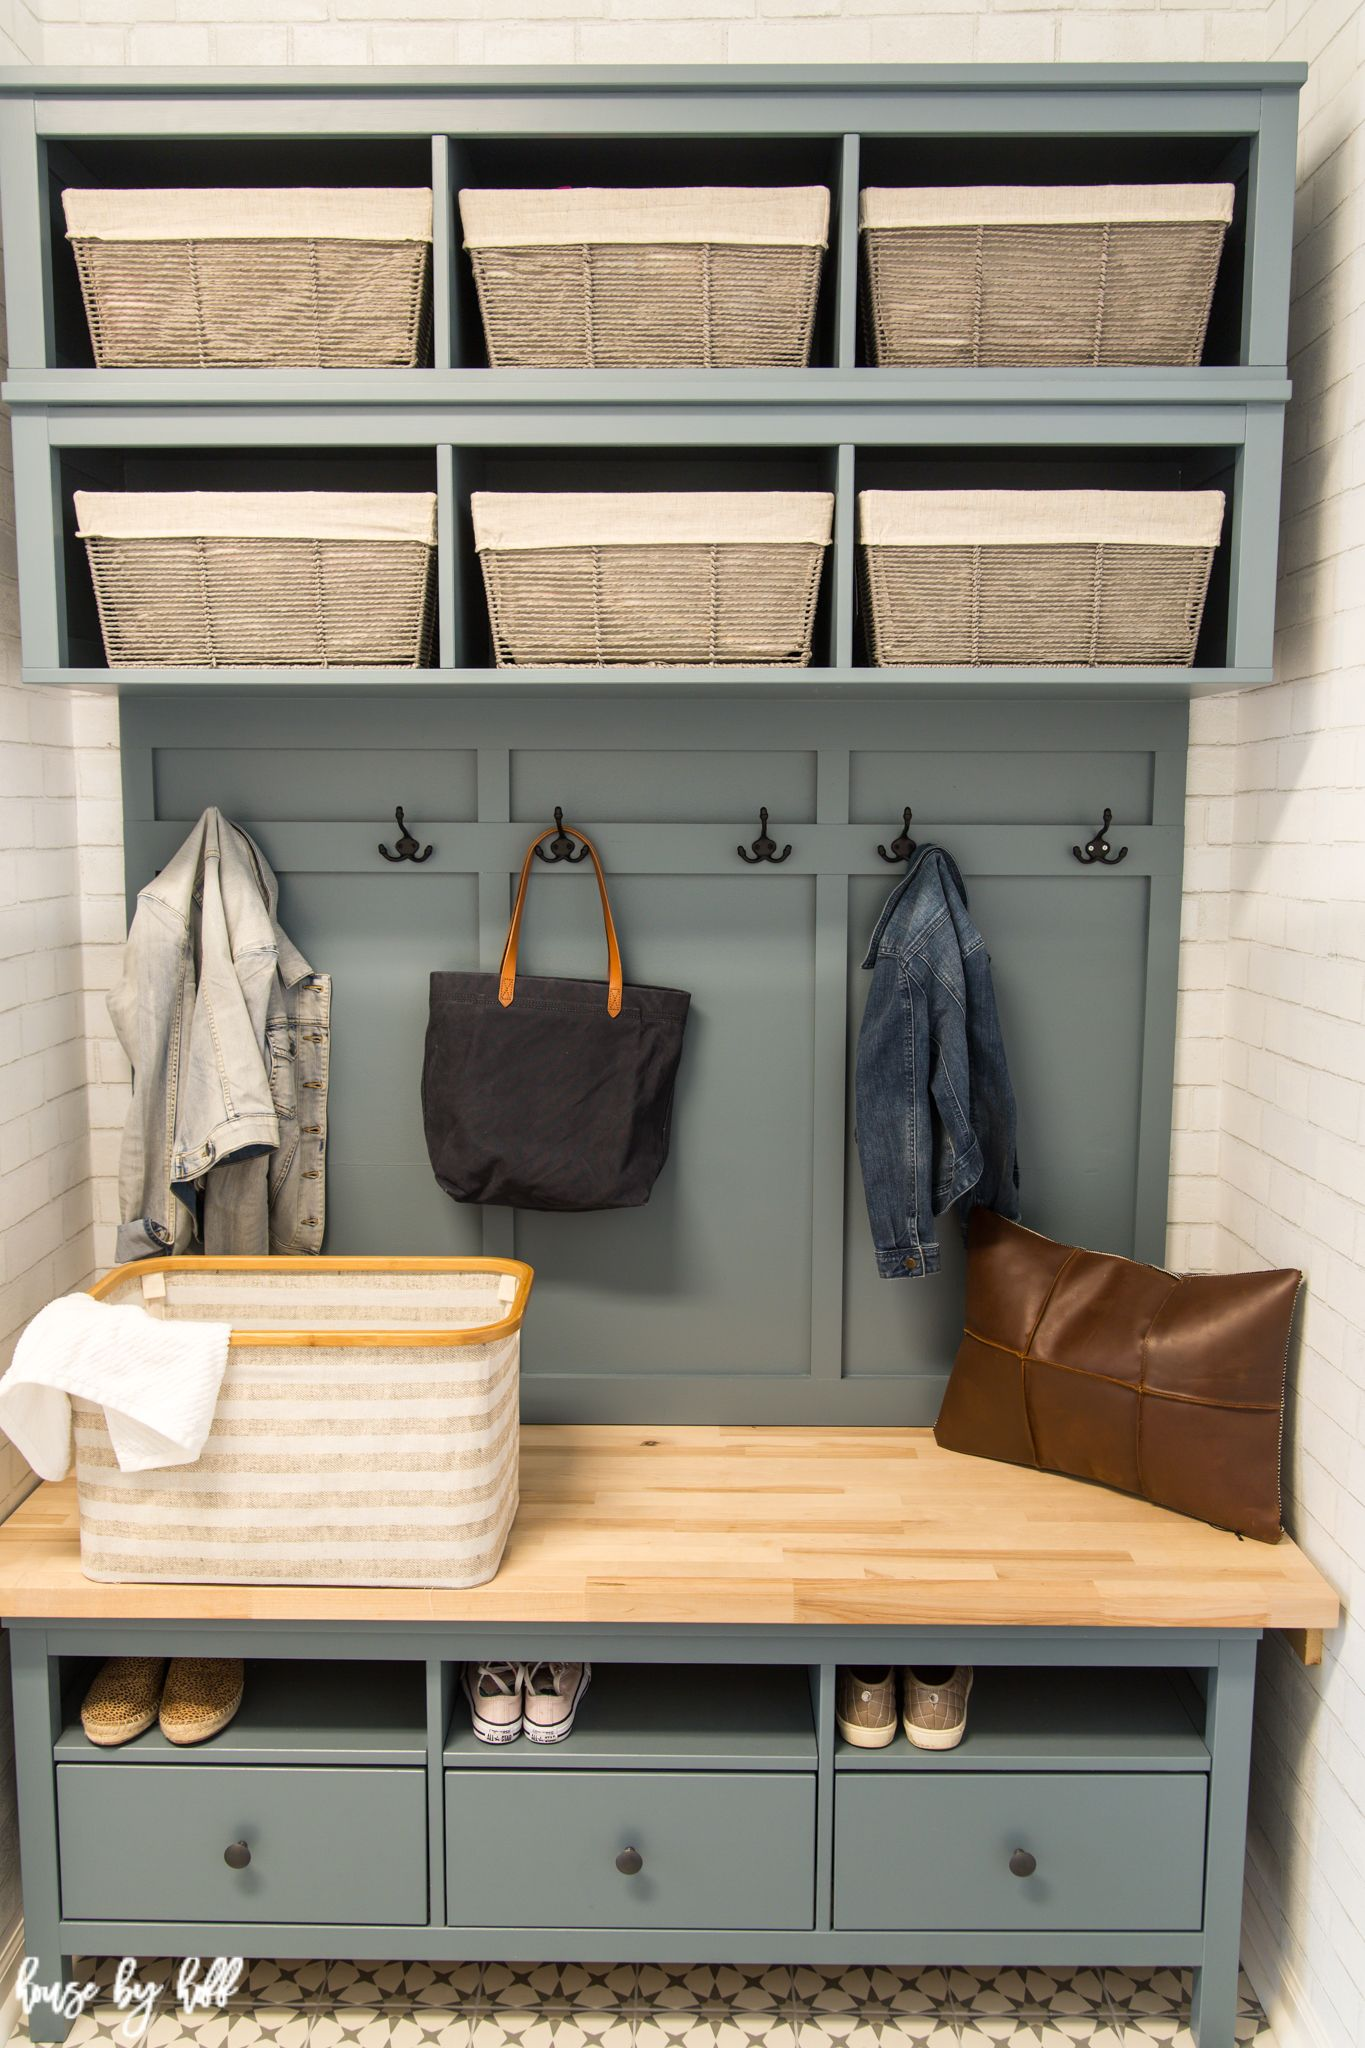 How To Add Storage And Style To A Small Mudroom Diy Mudroom Bench Mud Room Storage Small Mudroom Ideas